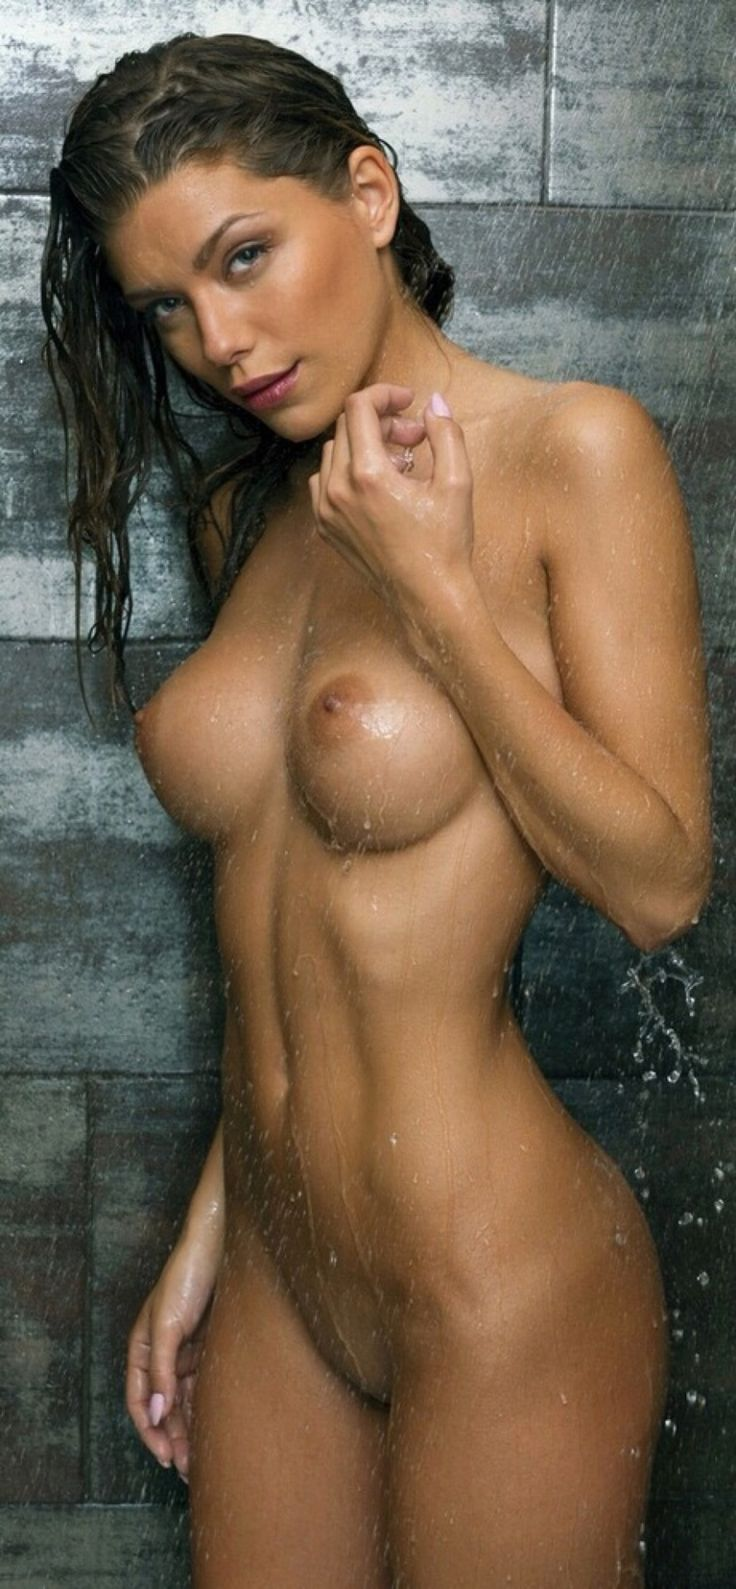 nude hot women wet